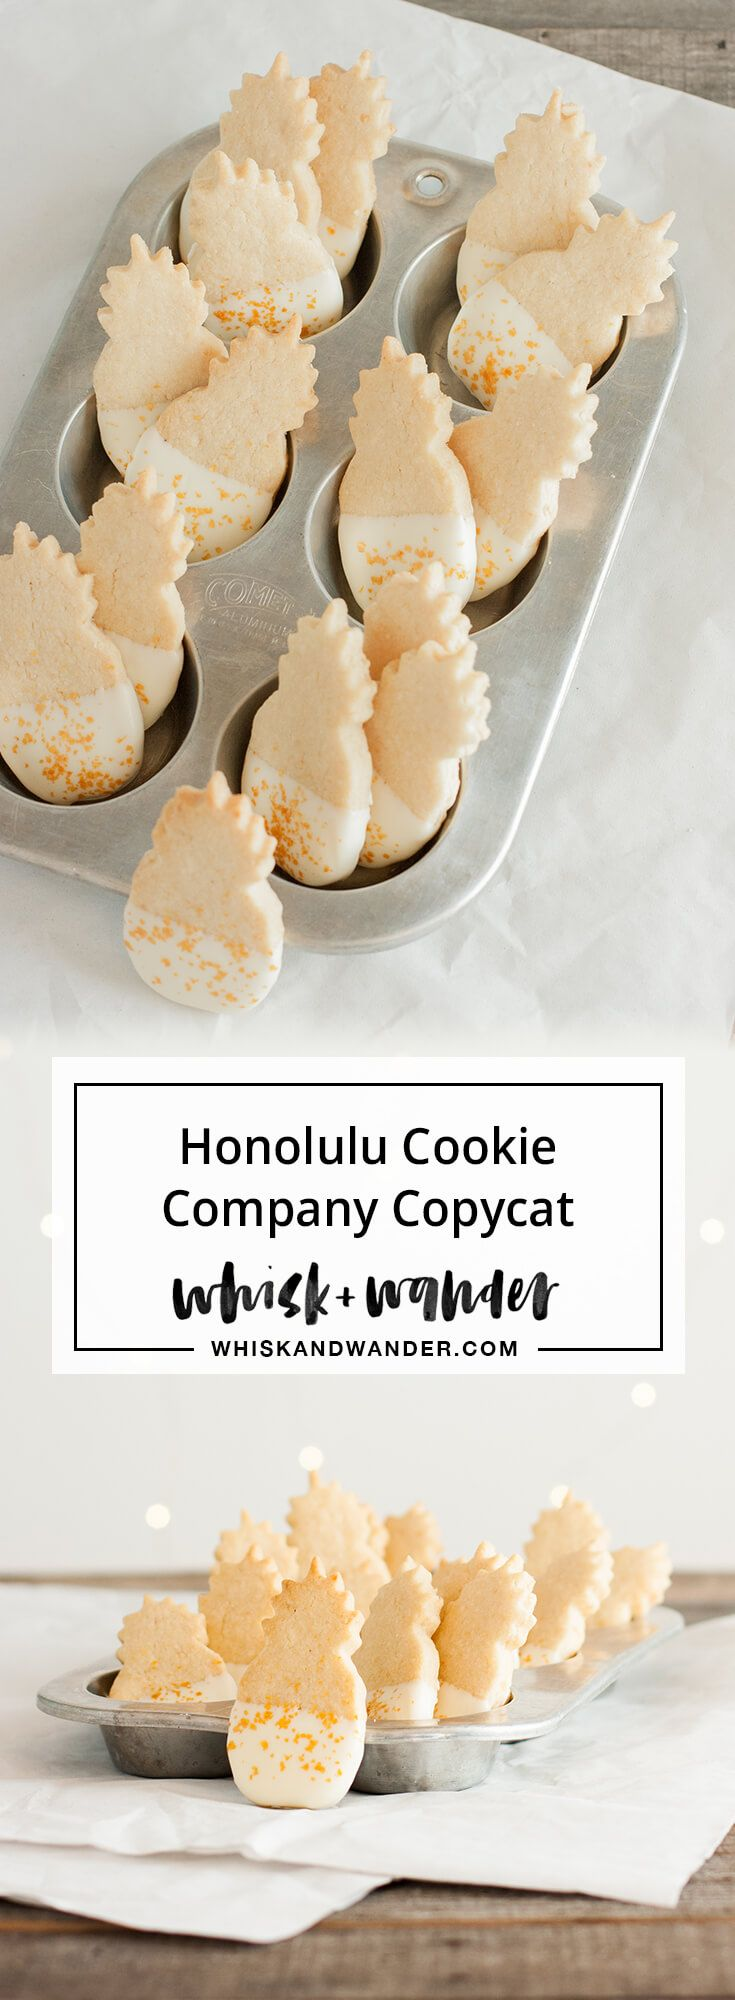 This macadamia nut shortbread cookie tastes just like the pineapple shaped version made famous by the Honolulu Cookie Company! via @whiskwander